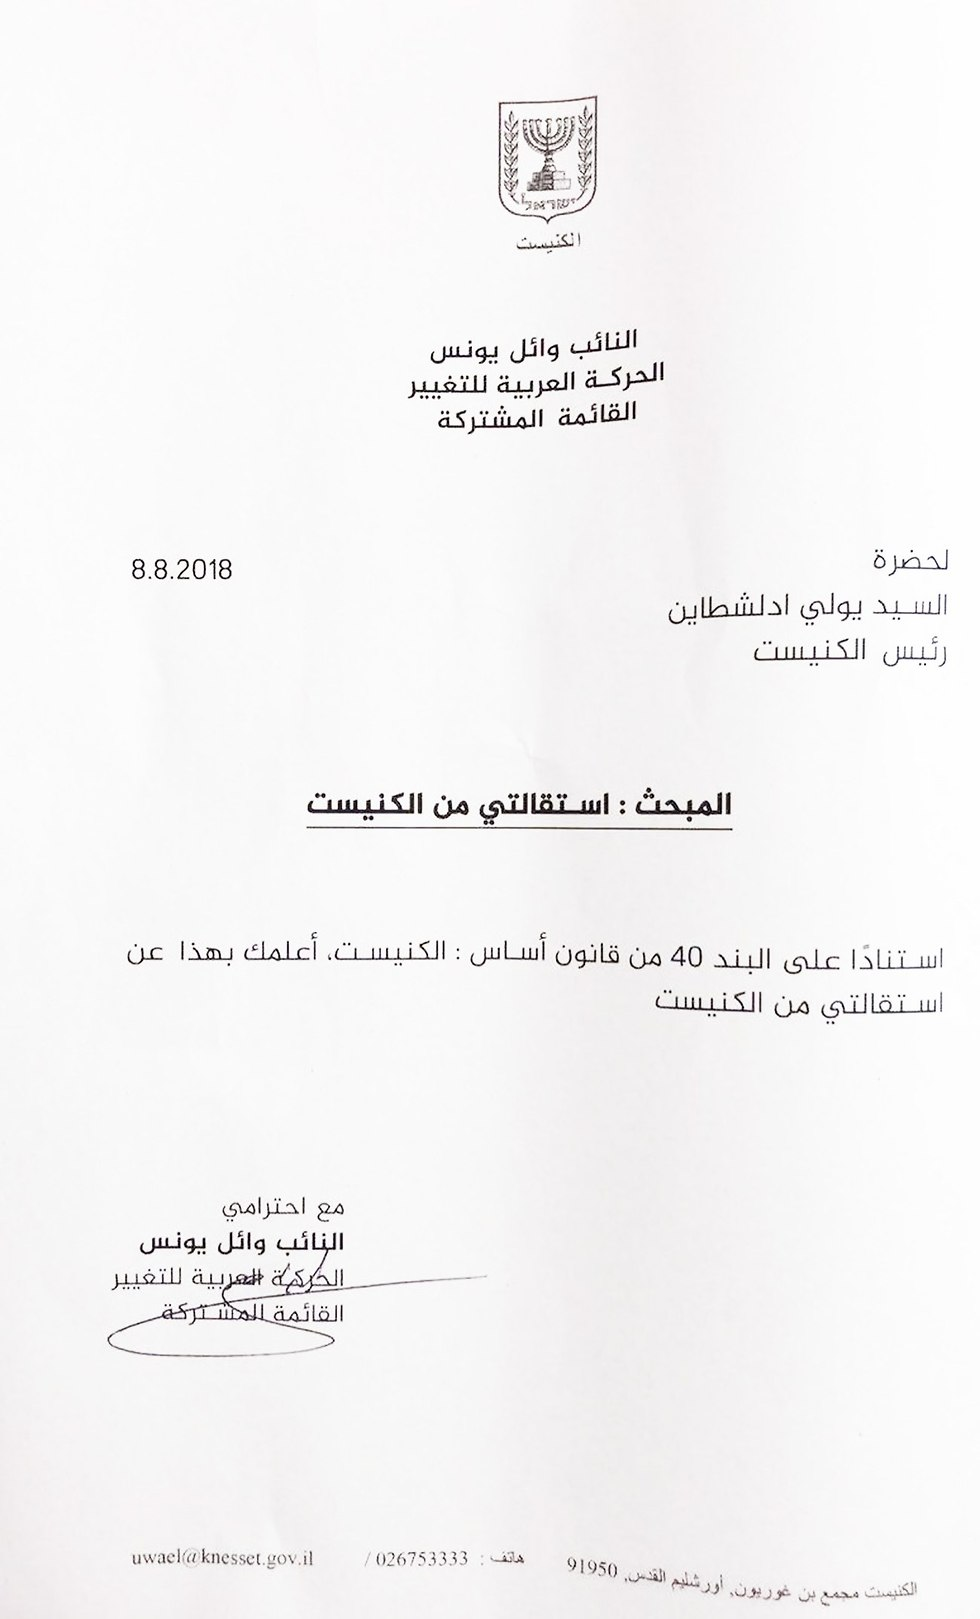 Younis' letter of resignation